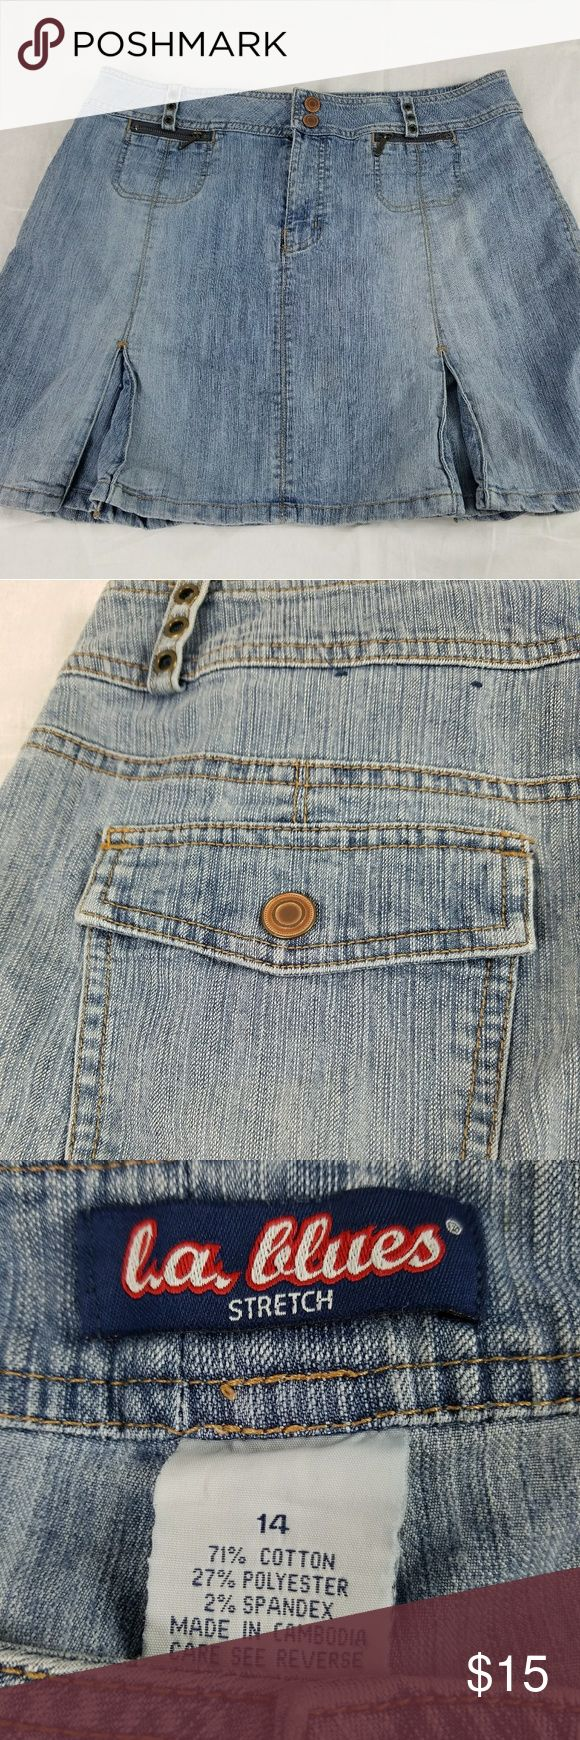 """LA Blues Stretch Denim Skirt LA Blues Stretch light denim skirt. Size 14, pockets galore! Small pleats on the bottom front and back. Rivets on the belt loops. No flaws that I can find.   32"""" waist  30"""" in length   From a clean smoke free home. LA Blues Skirts"""